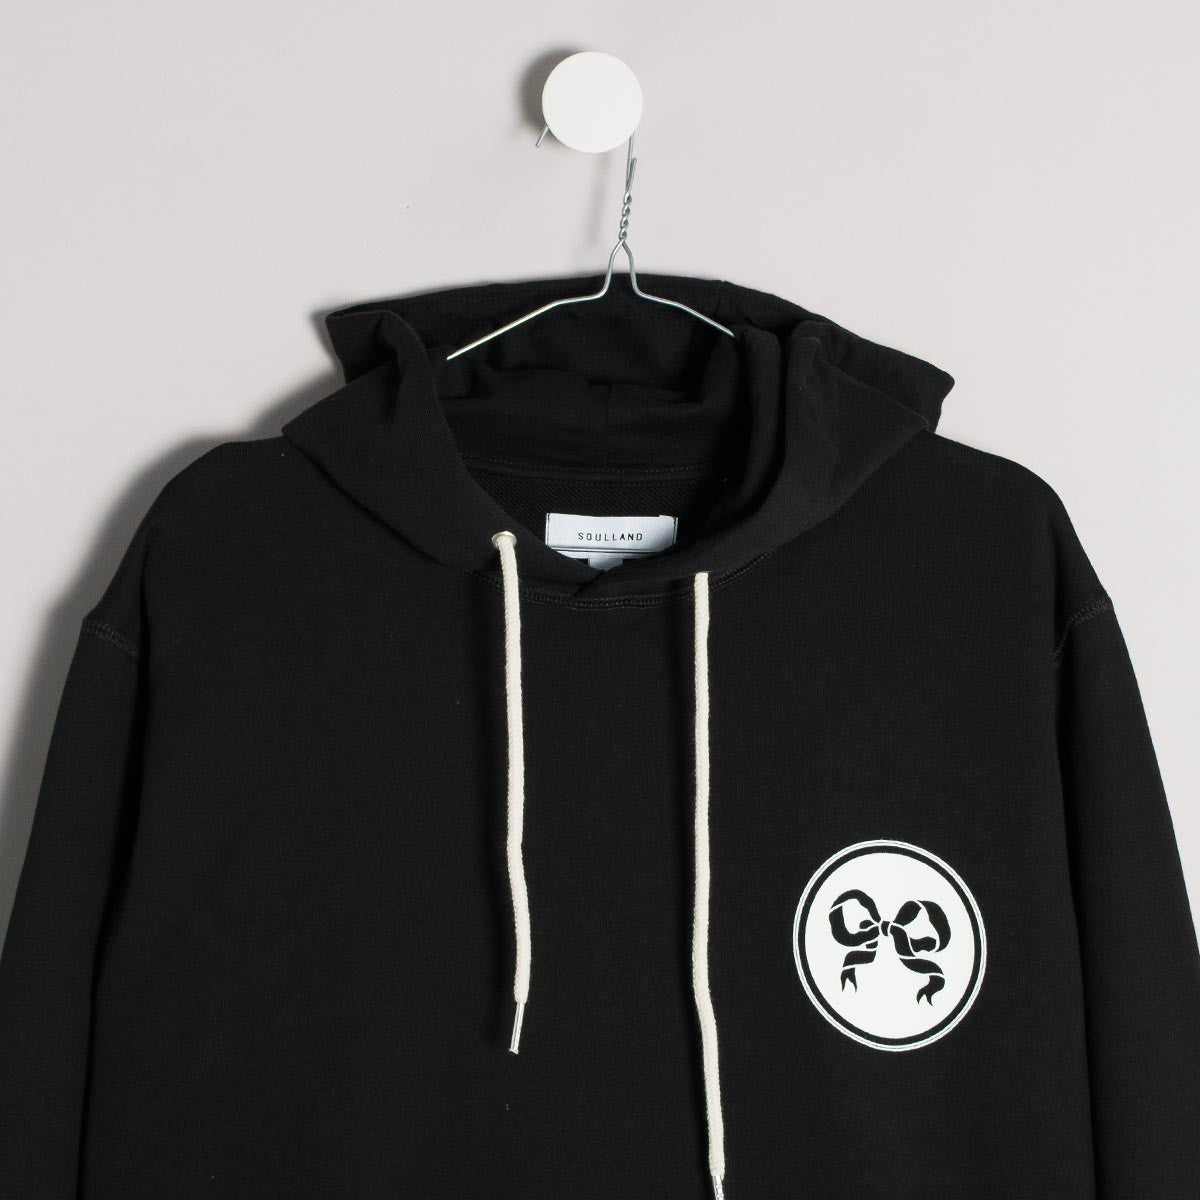 Soulland Eclipse Hoody – Black - 3